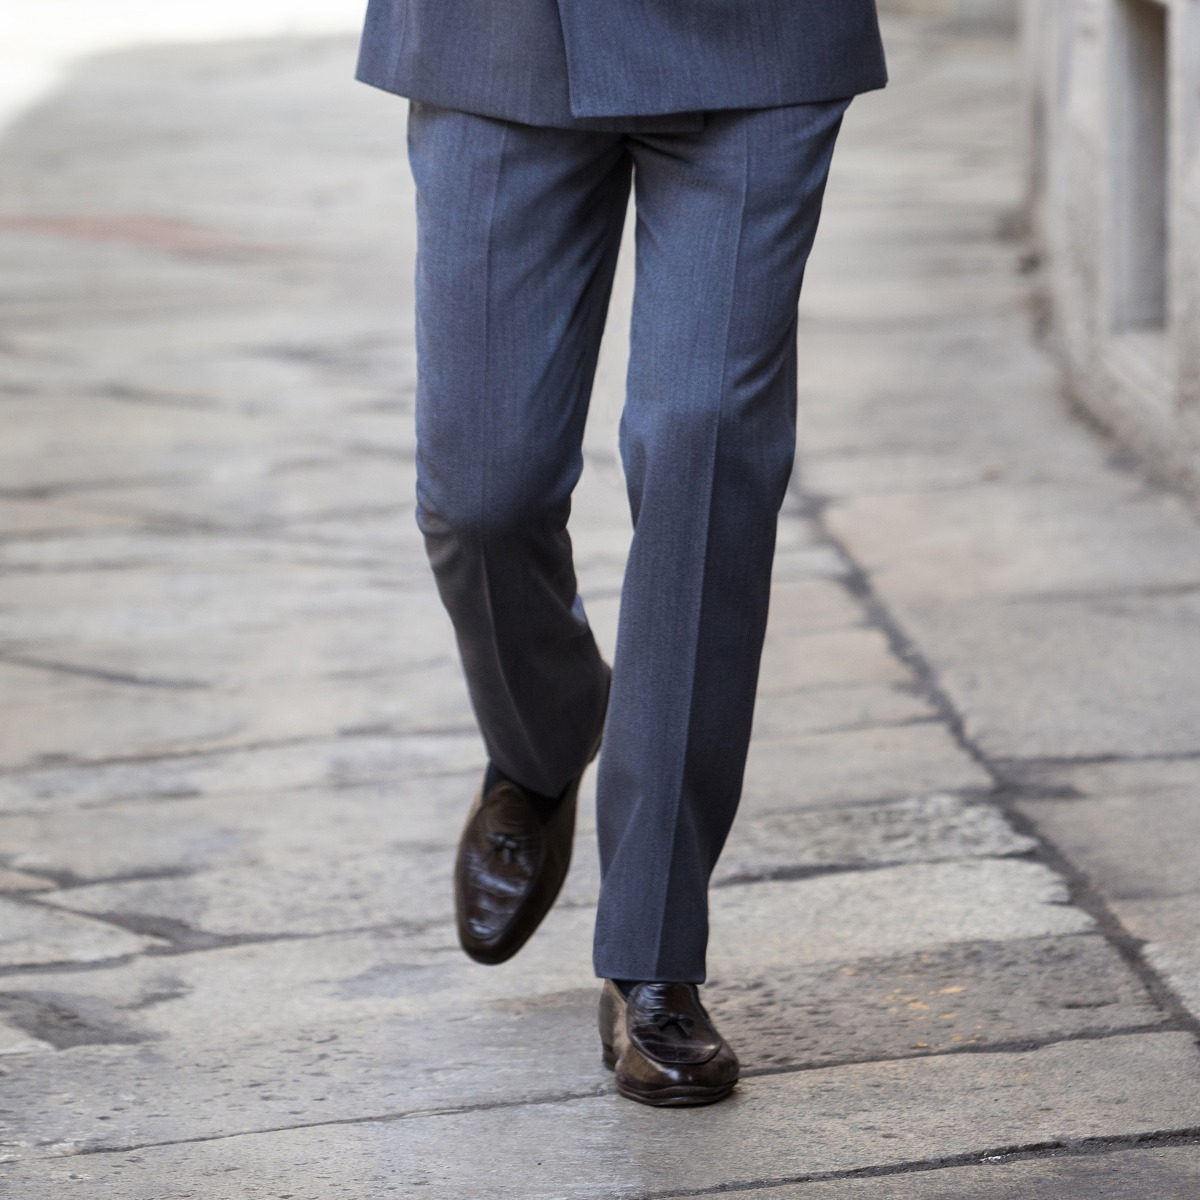 Denim Blue Worsted Wool Genny Suit Trousers